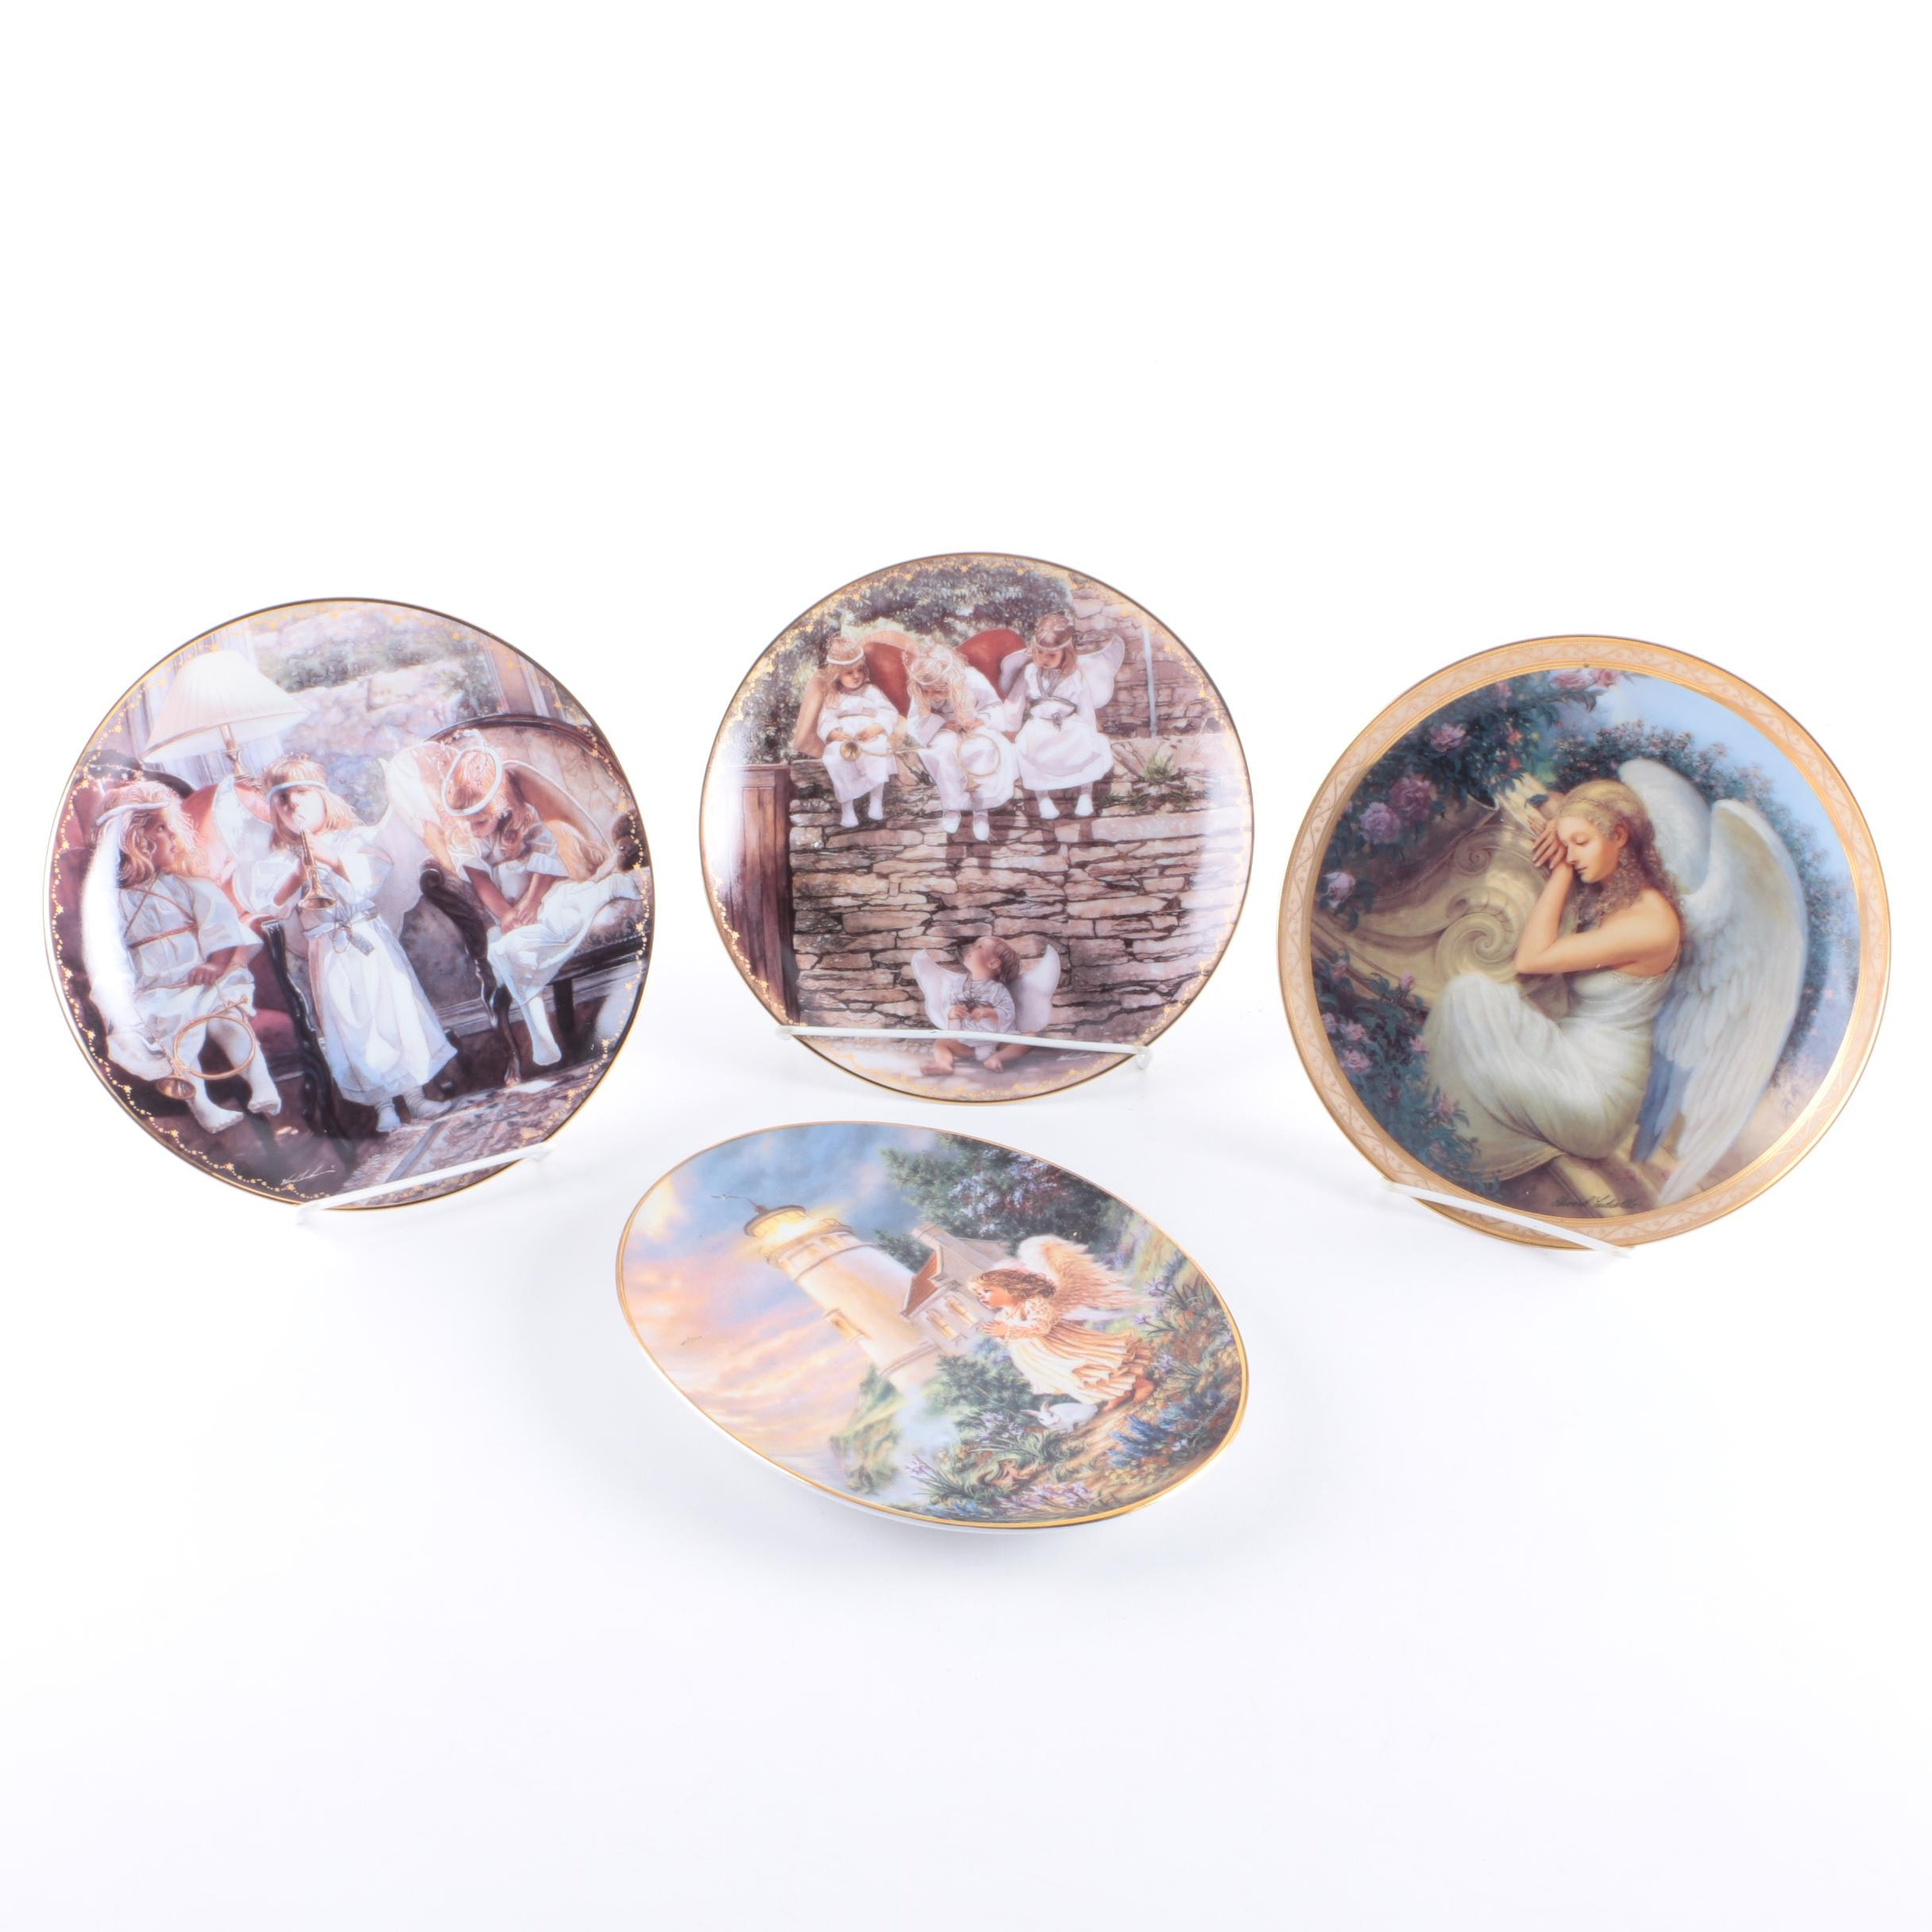 Selection of Angel Themed Decorative Plates